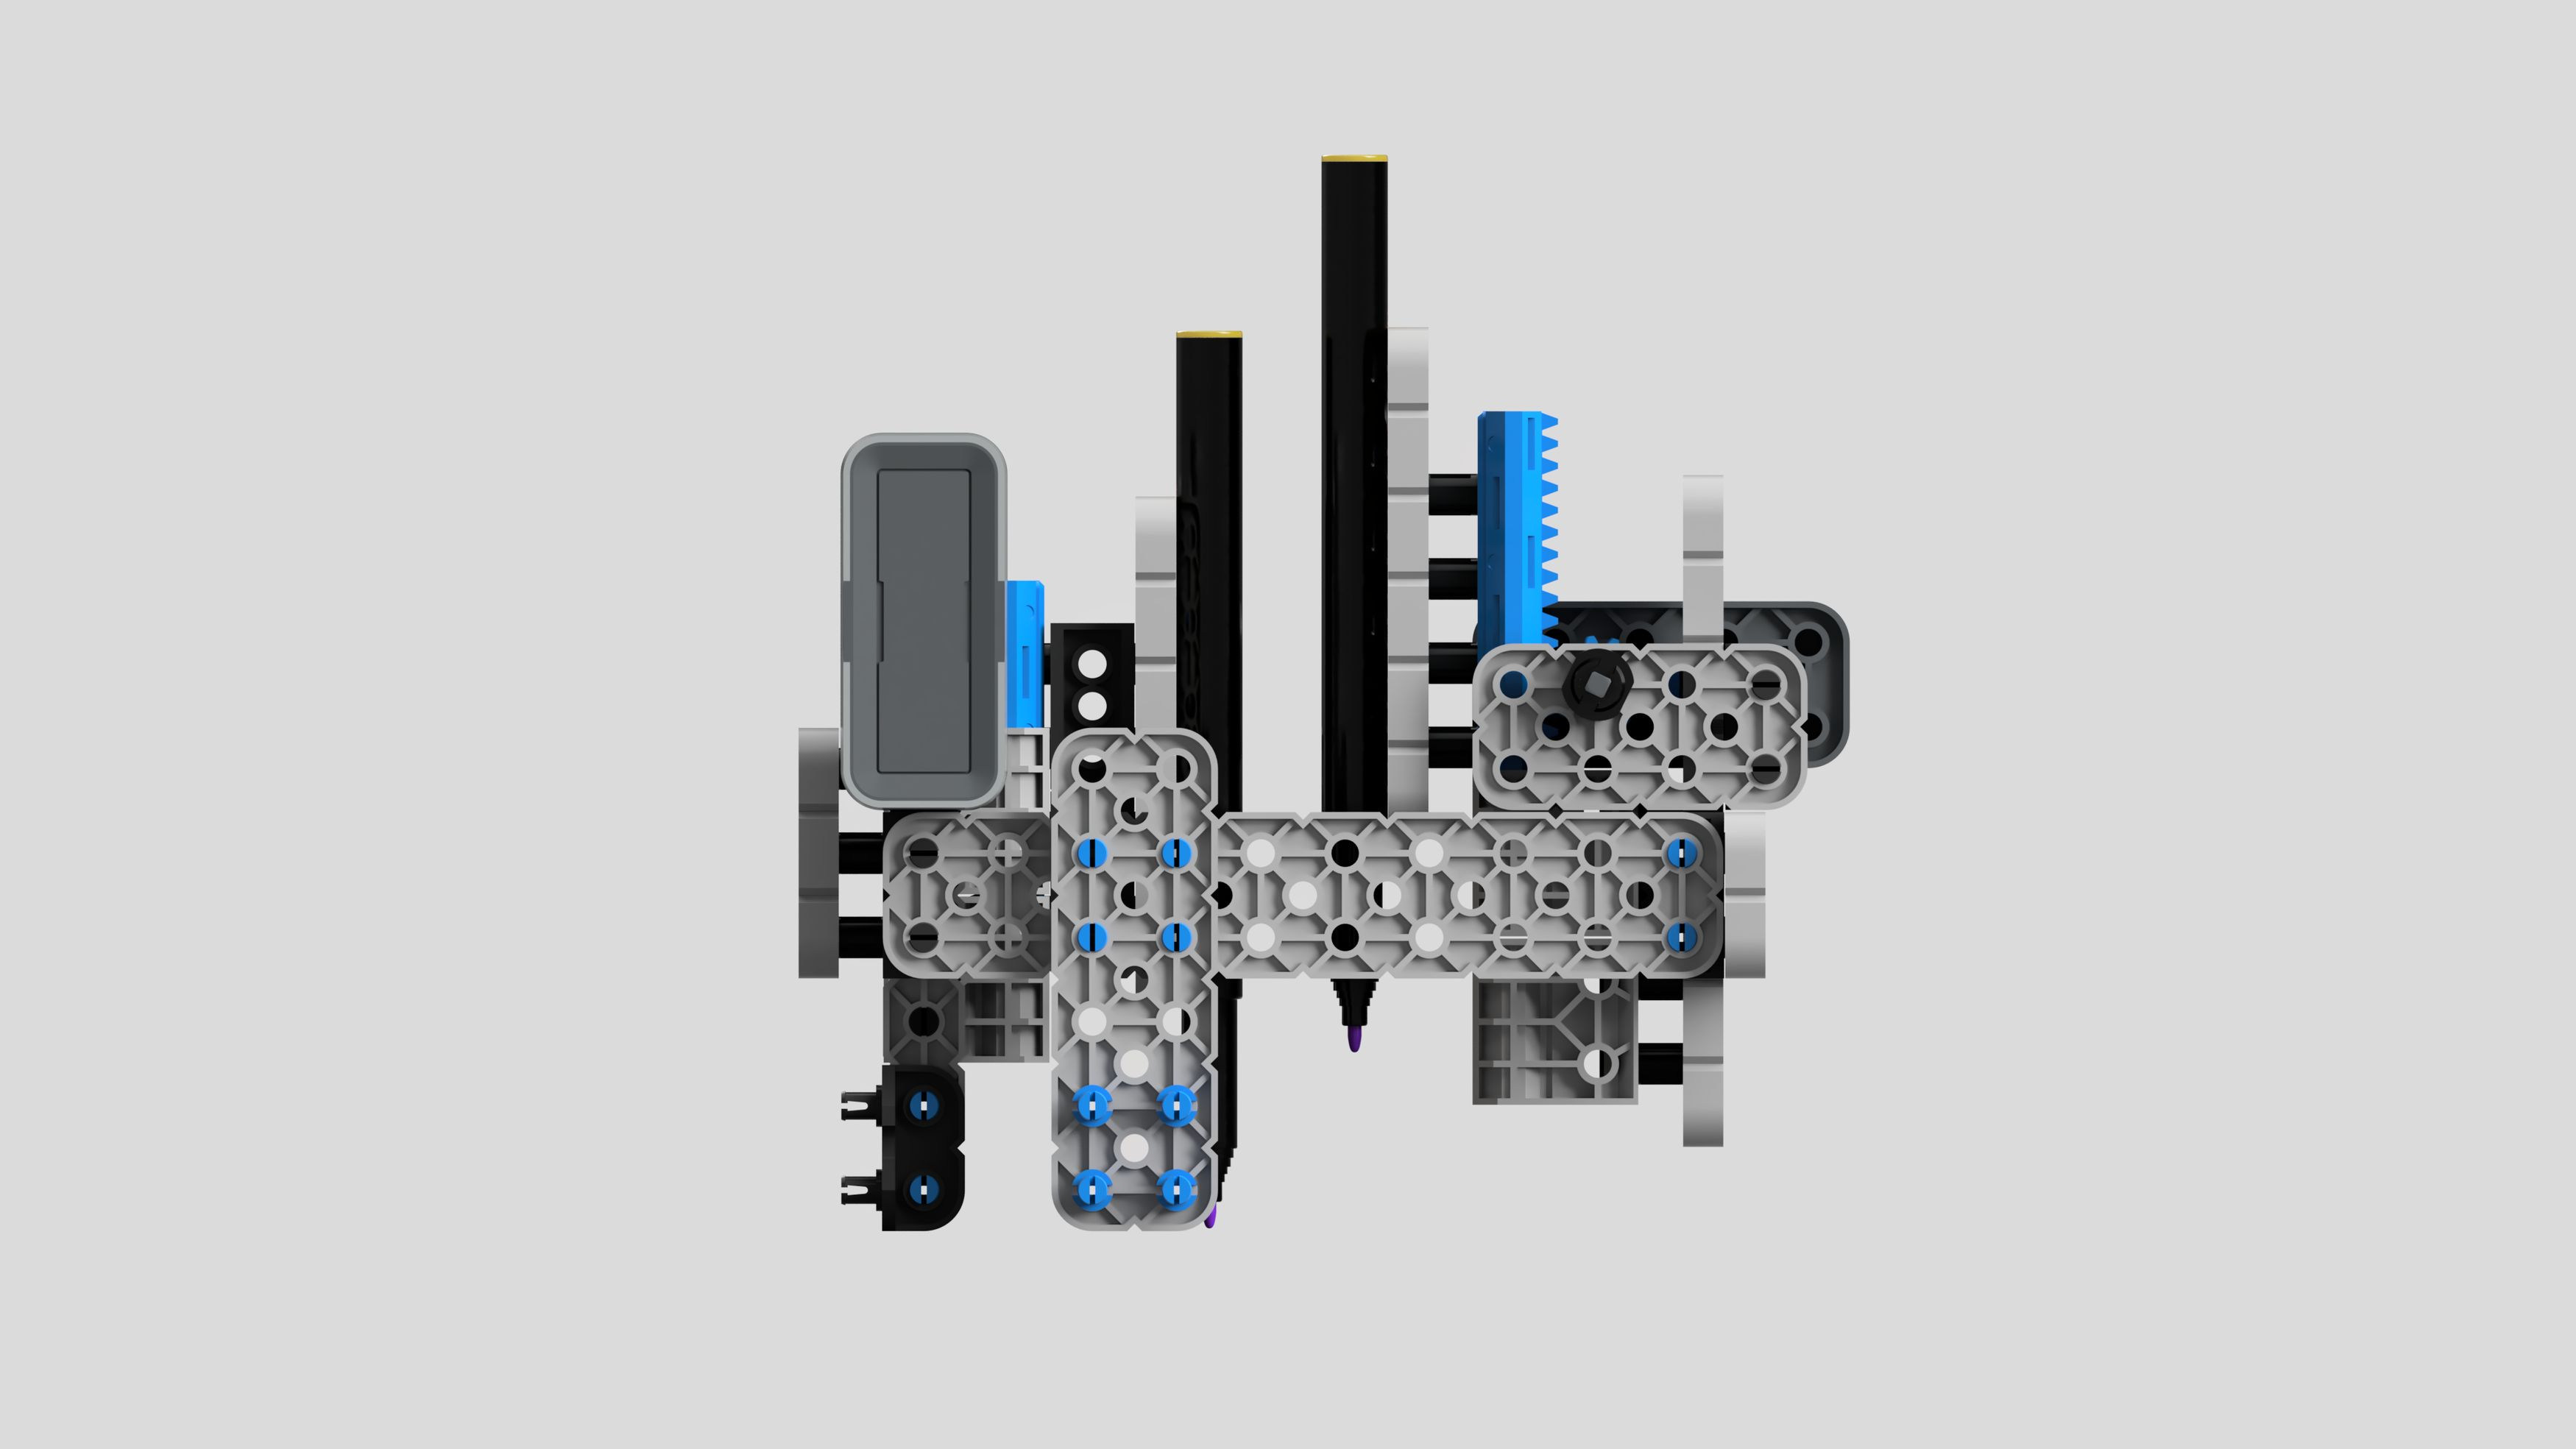 Robotic-pen-vex-iq---vexcode-v2-0-2020-may-24-04-41-06pm-000-customizedview11669952593-png-3500-3500